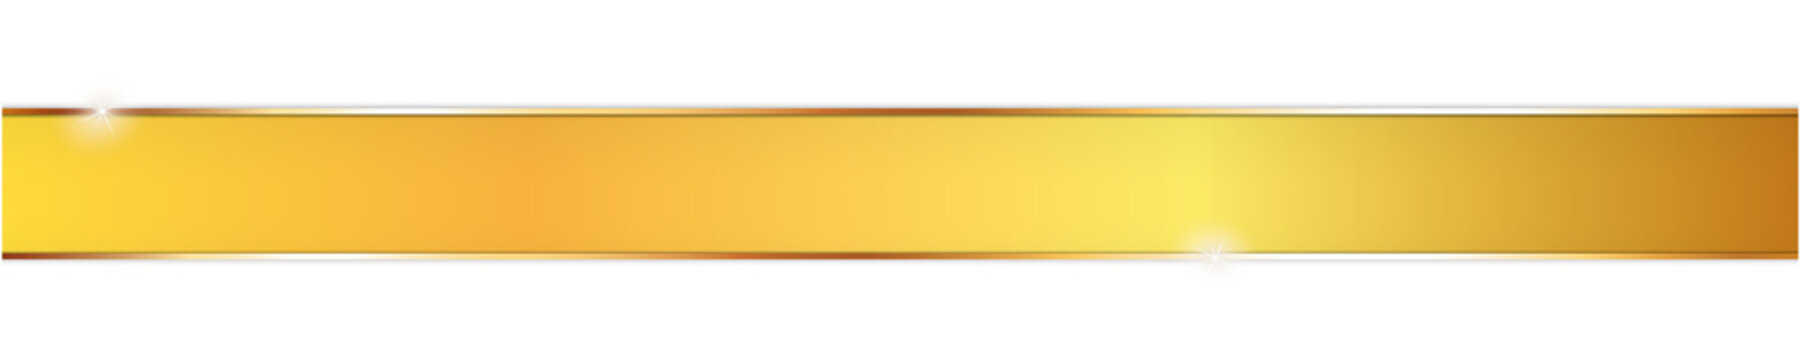 long yellow ribbon banner on white background